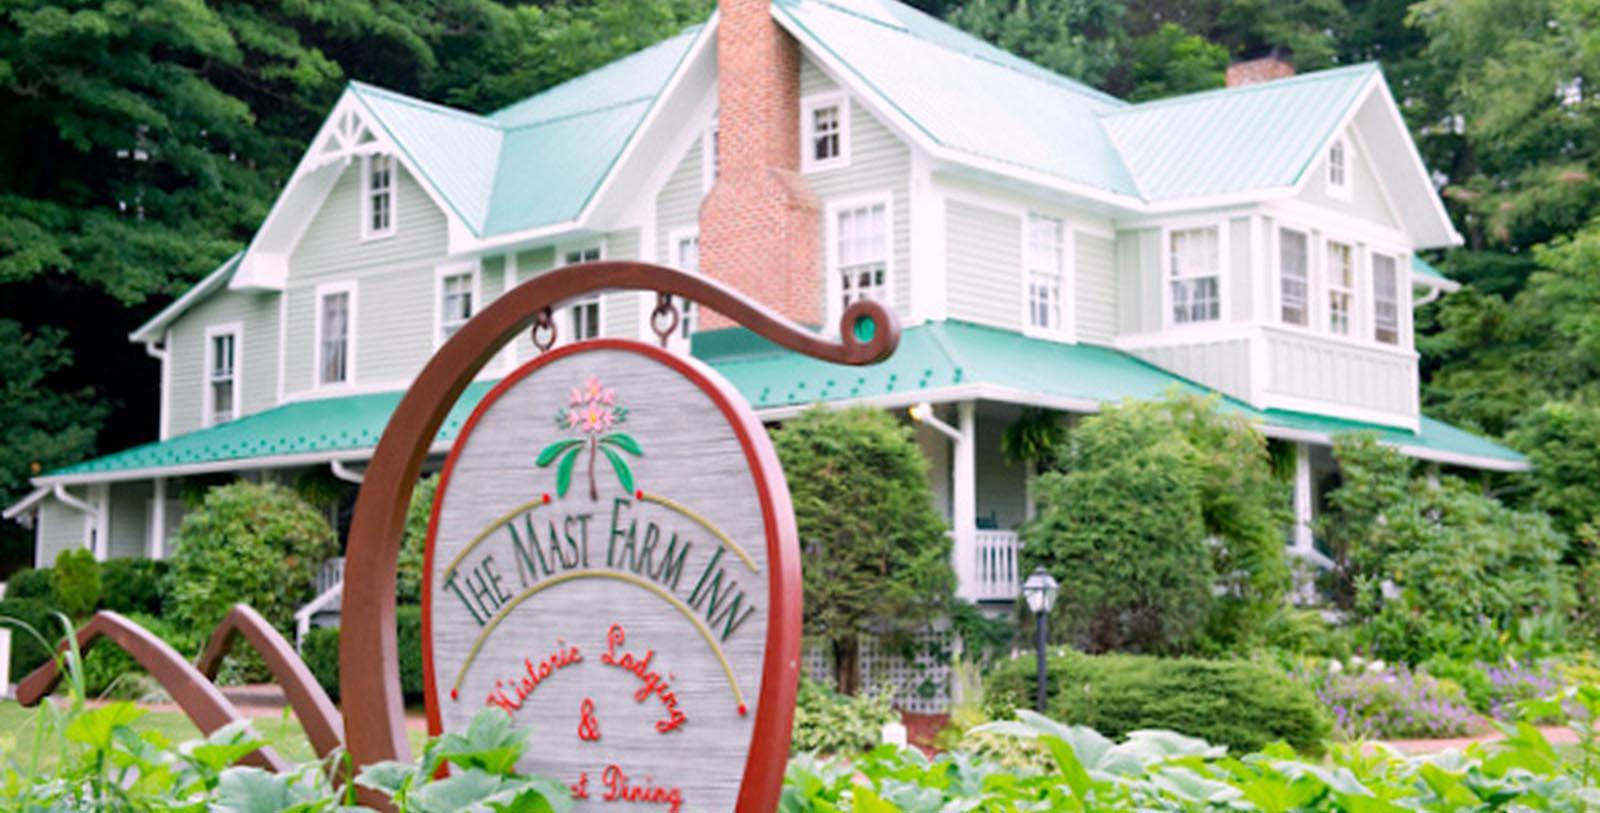 Image of Exterior, Mast Farm Inn in Banner Elk, North Carolina, 1792, Member of Historic Hotels of America, Special Offers, Discounted Rates, Families, Romantic Escape, Honeymoons, Anniversaries, Reunions